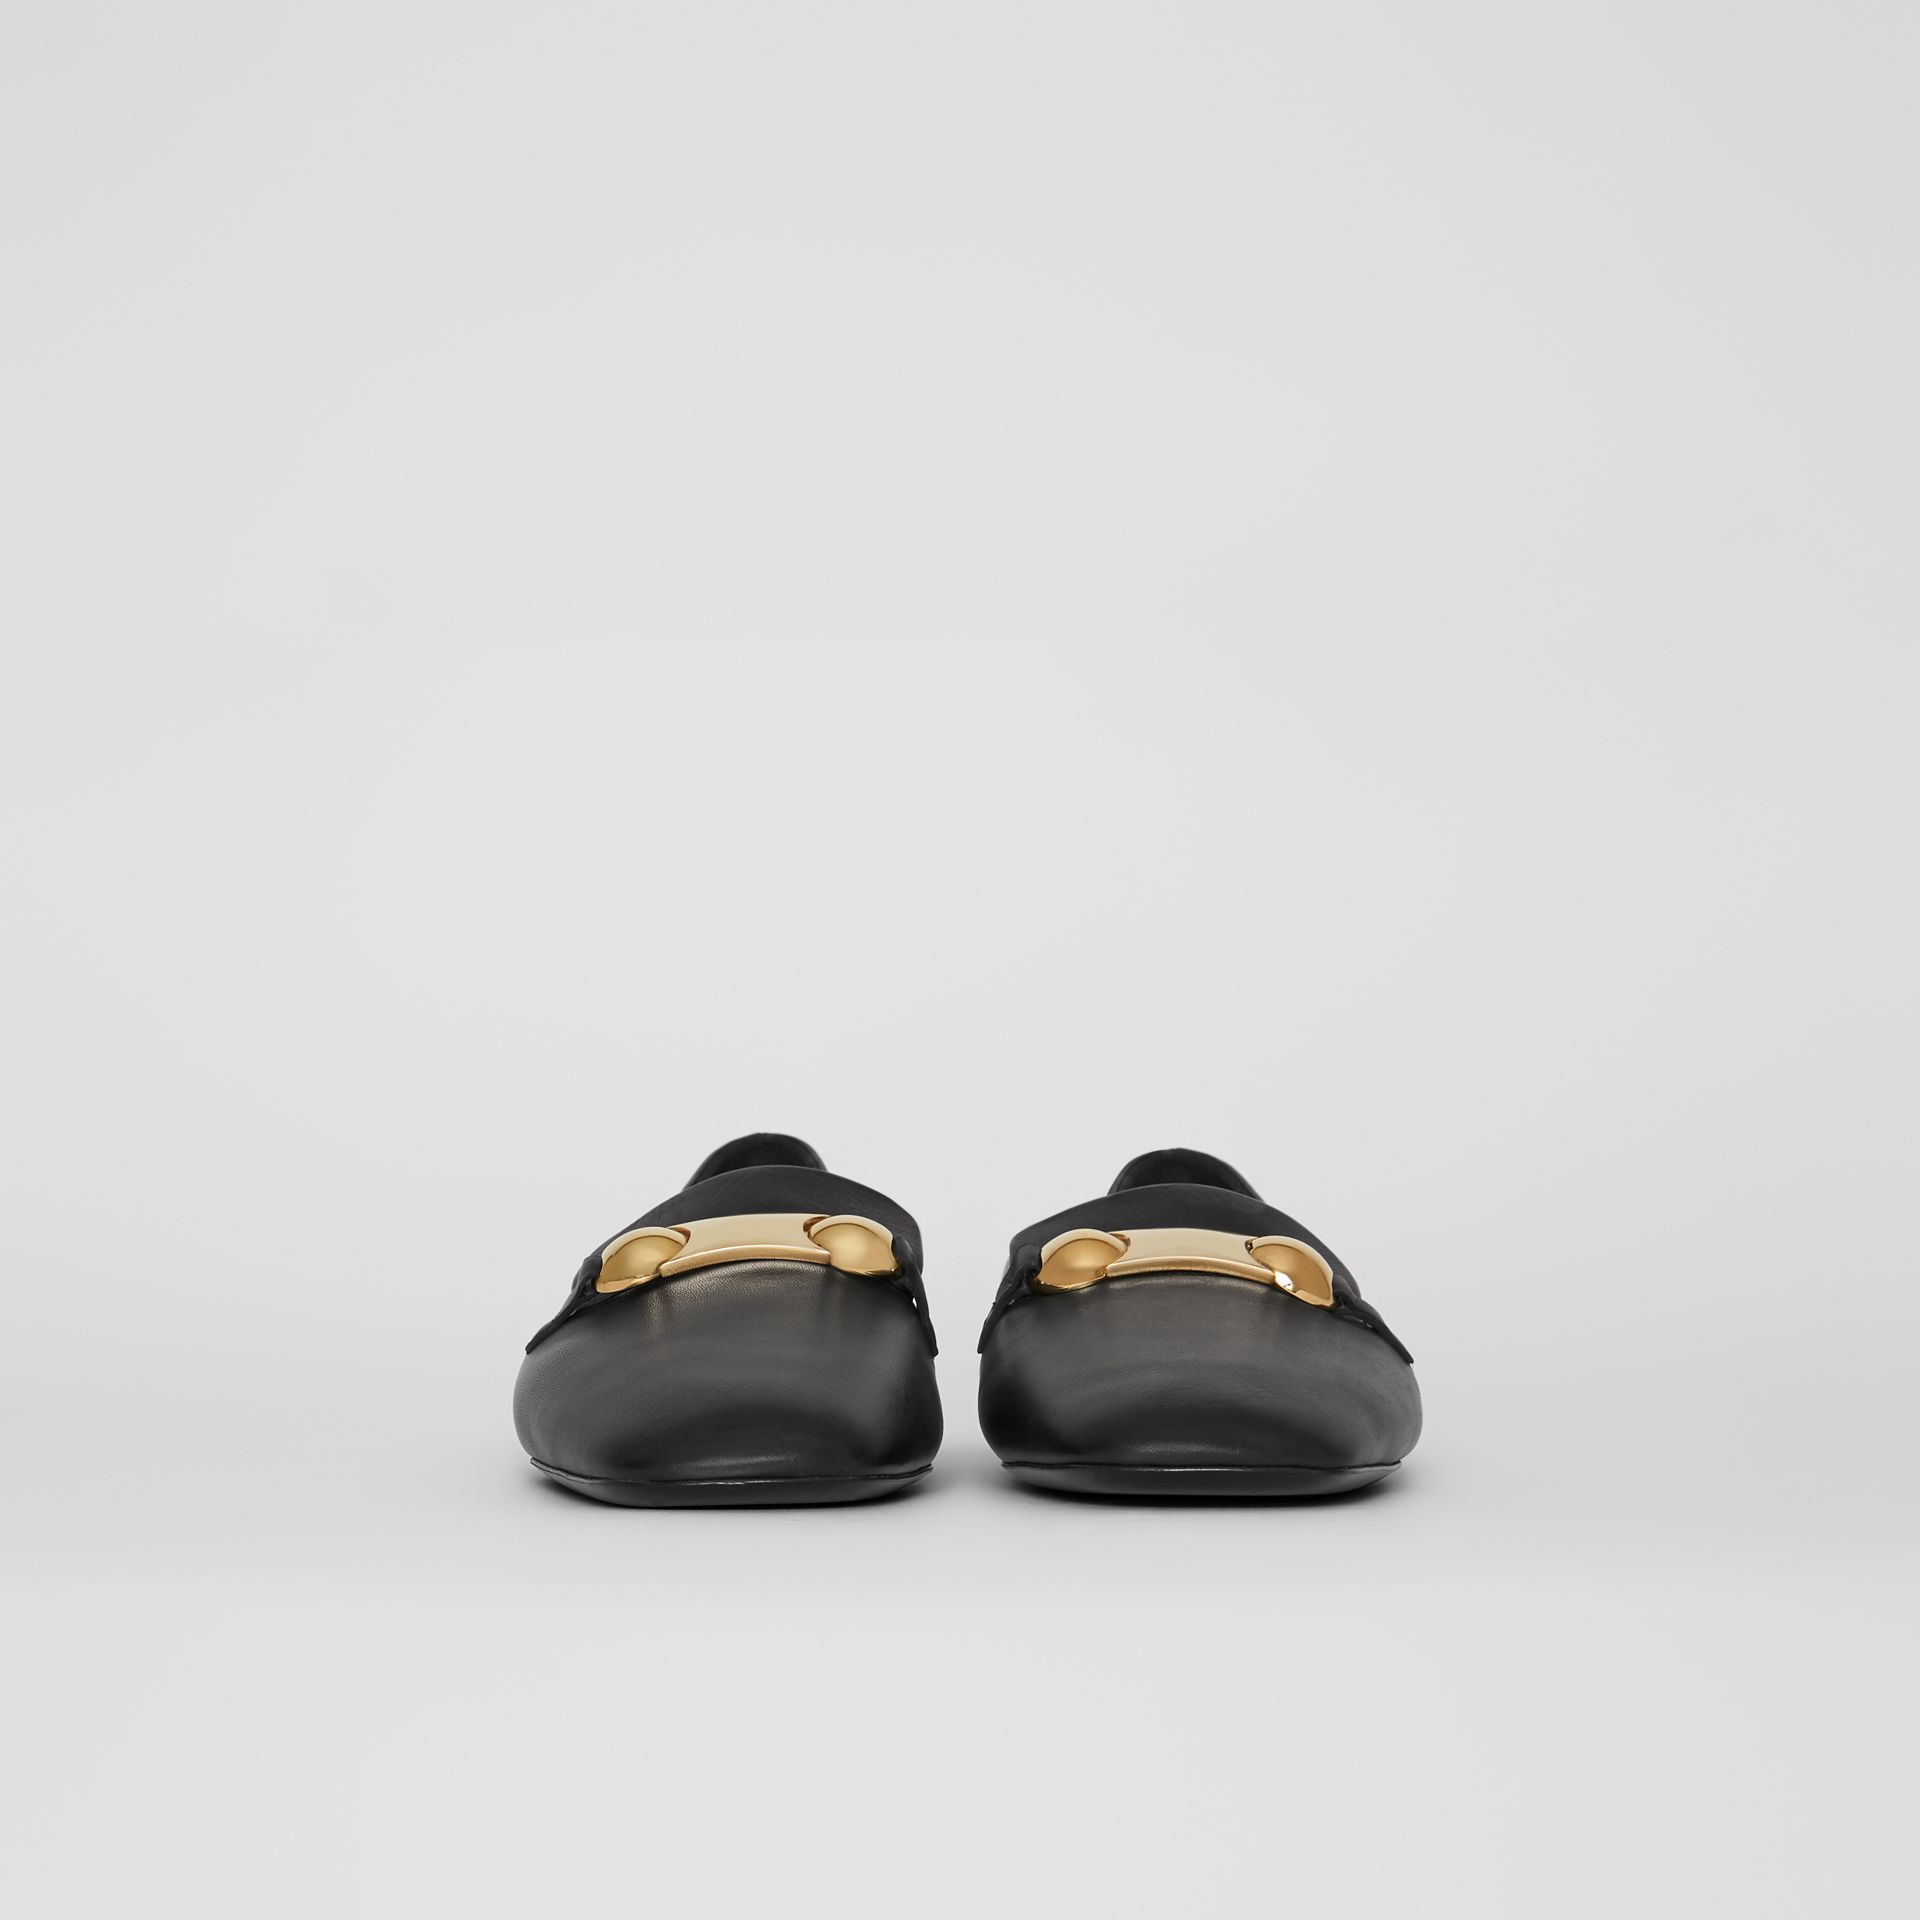 Studded Bar Detail Leather Loafers in Black - Women | Burberry - gallery image 3